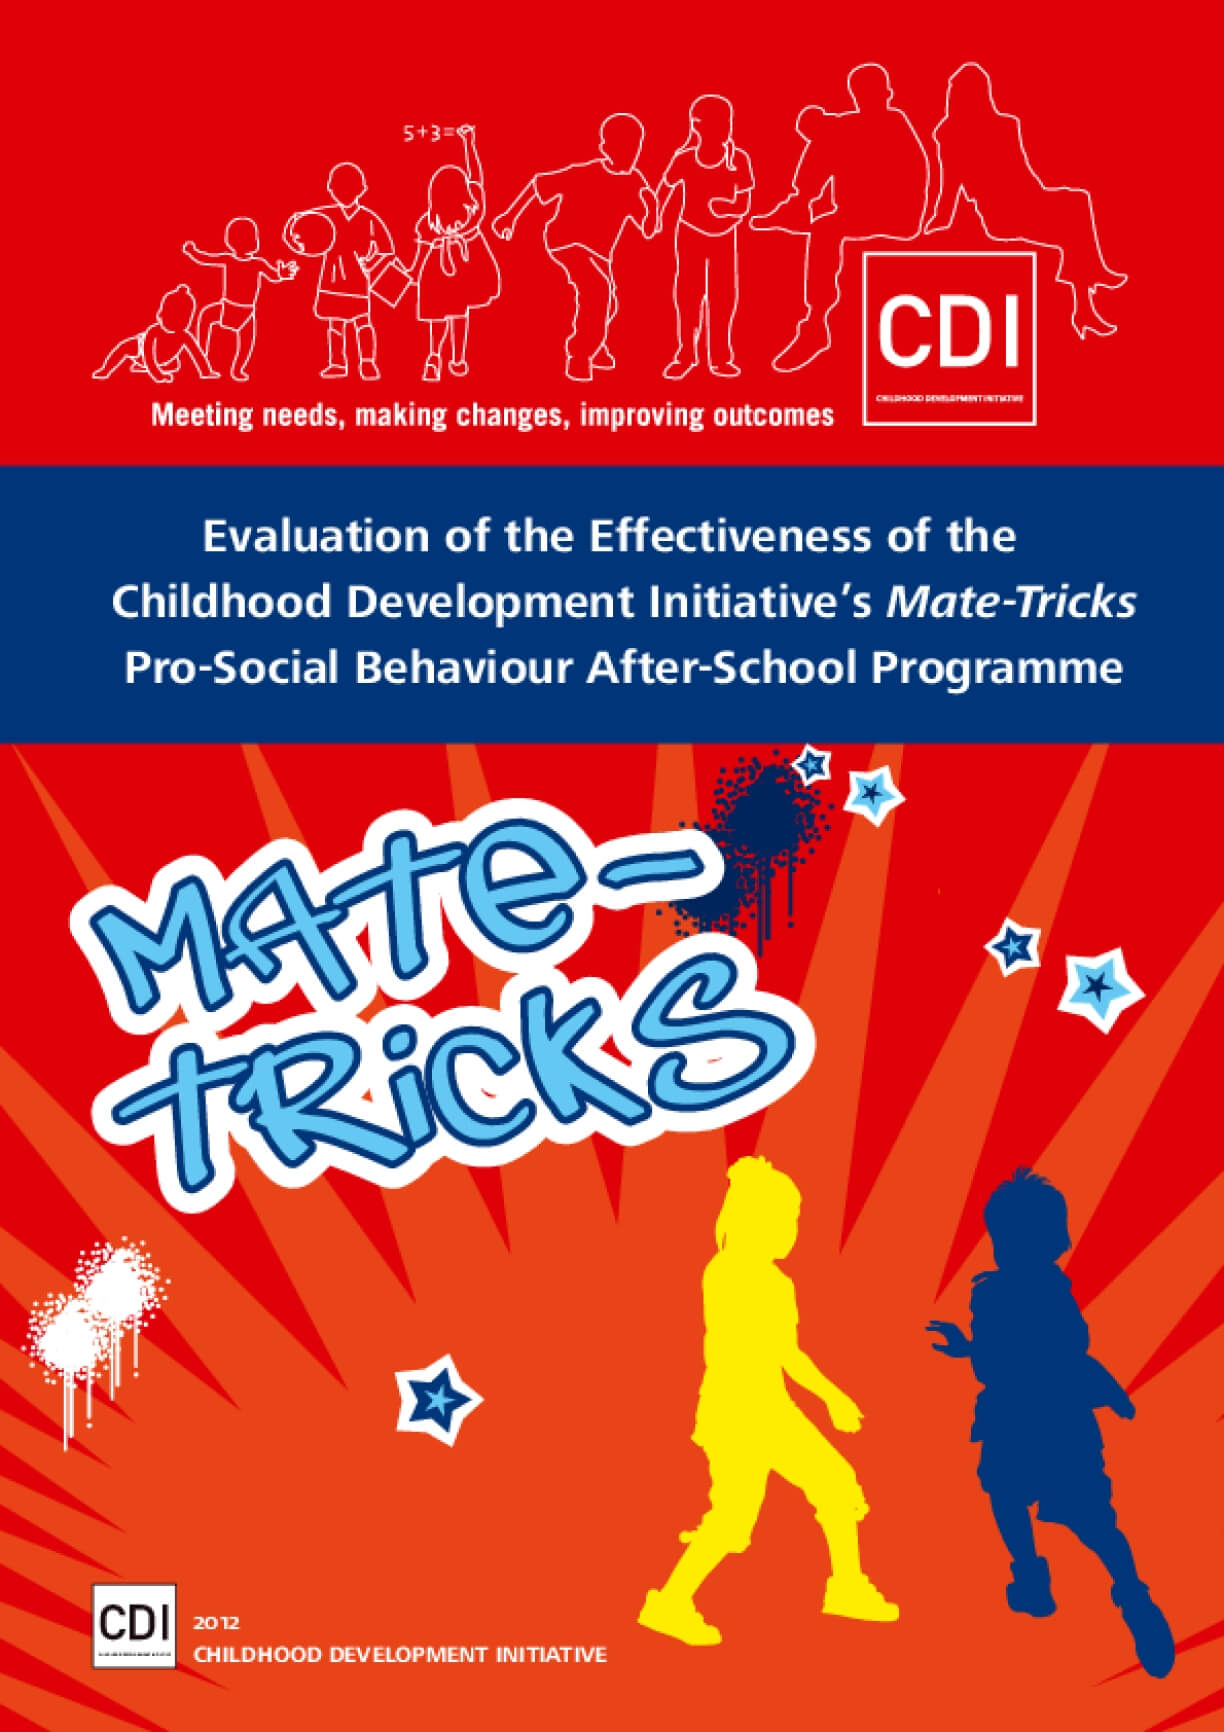 Evaluation of the Effectiveness of the Childhood Development Initiative's Mate-Tricks Pro-Social Behaviour After-School Programme